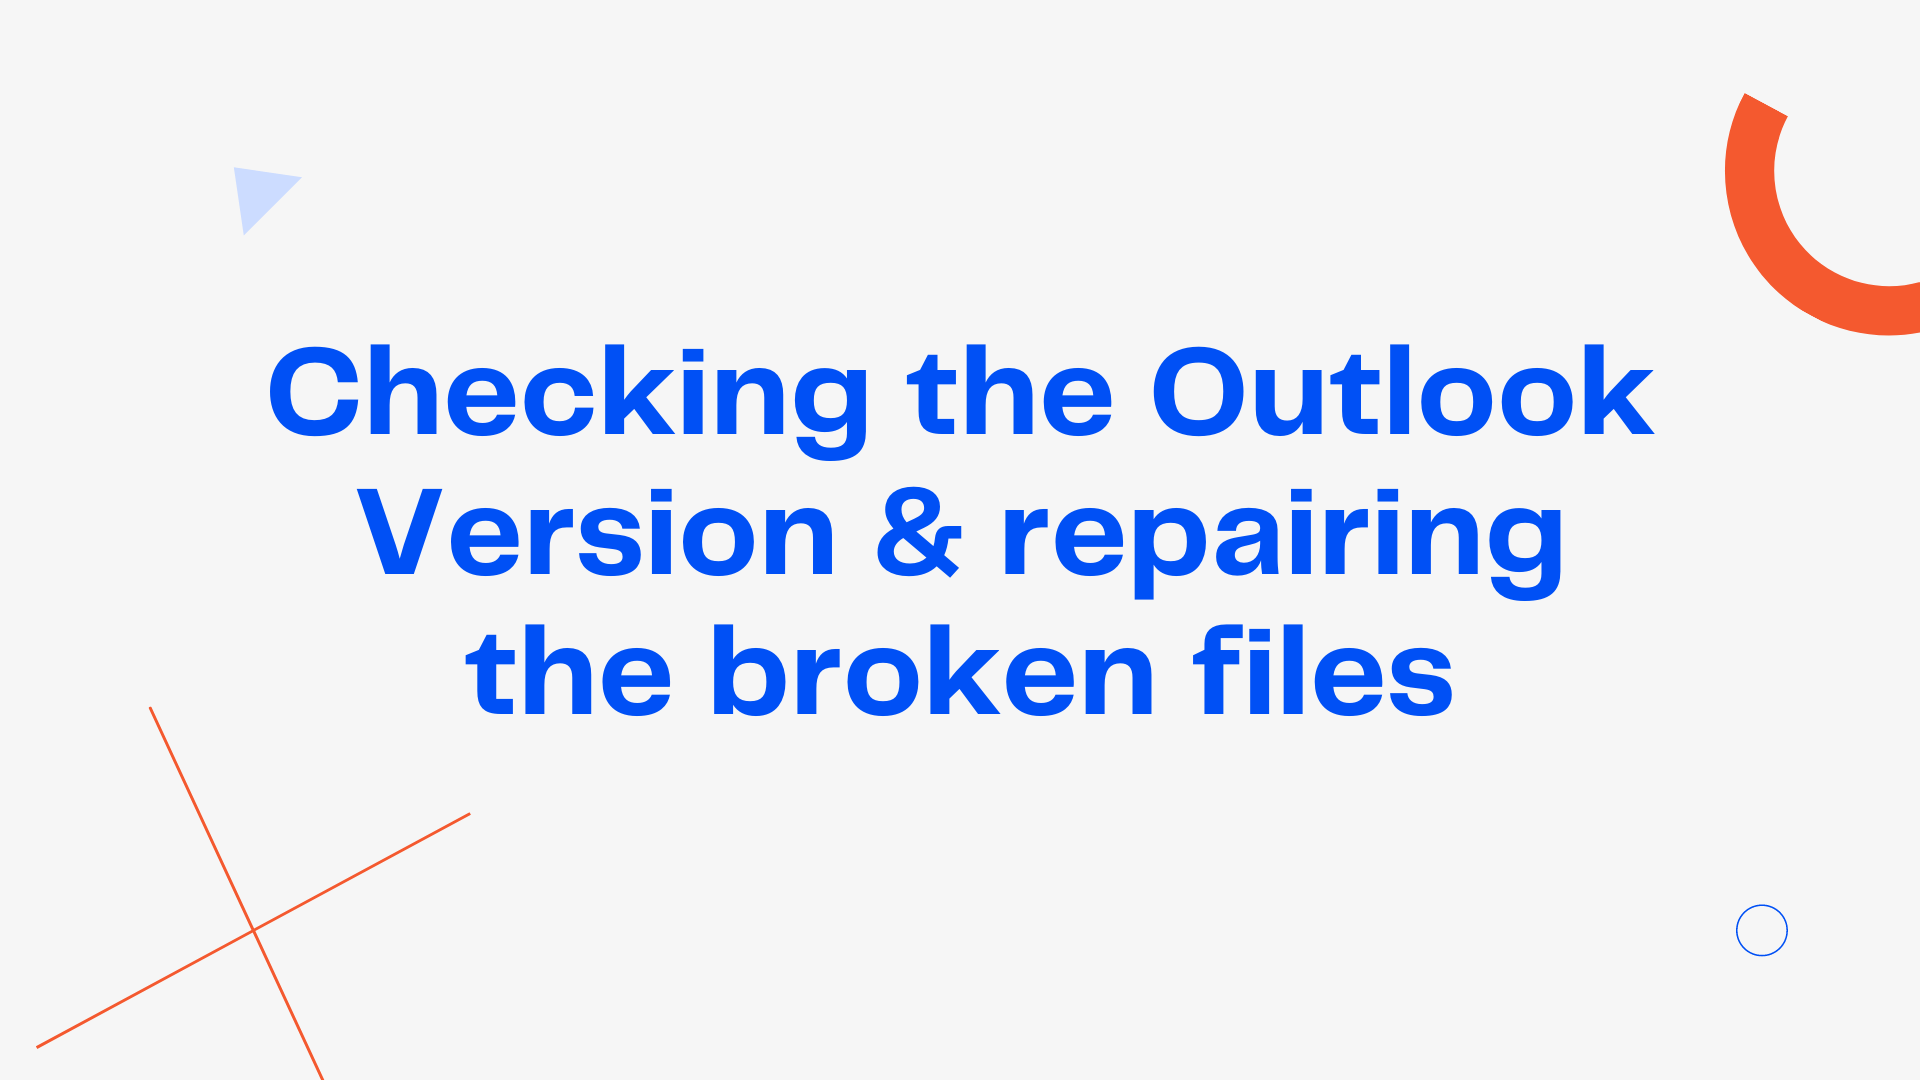 Checking the Outlook Version & repairing the broken files and fix [pii_email_cbd448bbd34c985e423c]